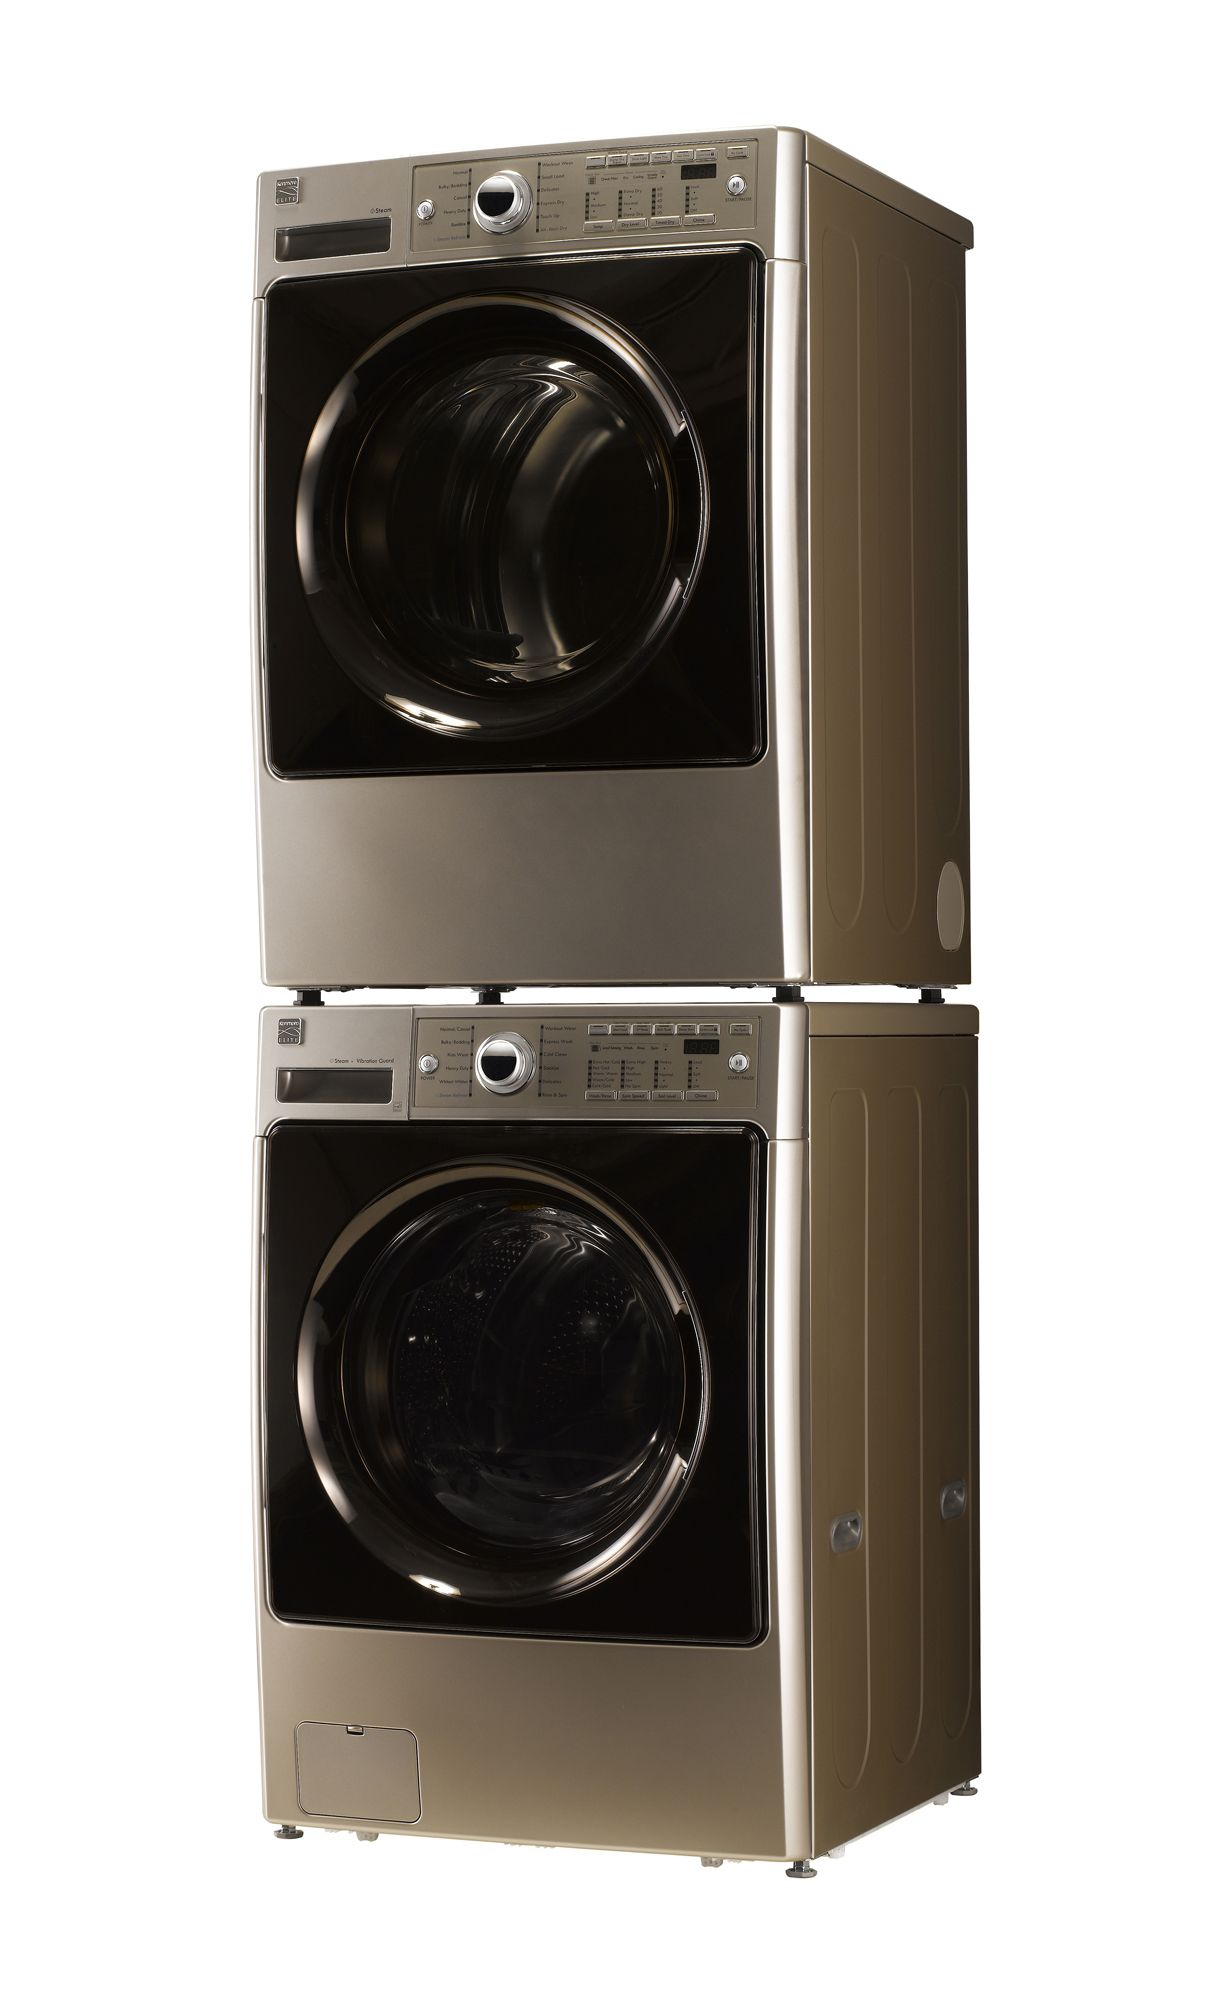 Kenmore Elite 3.9 cu. ft. Front-Load Washing Machine - Brown